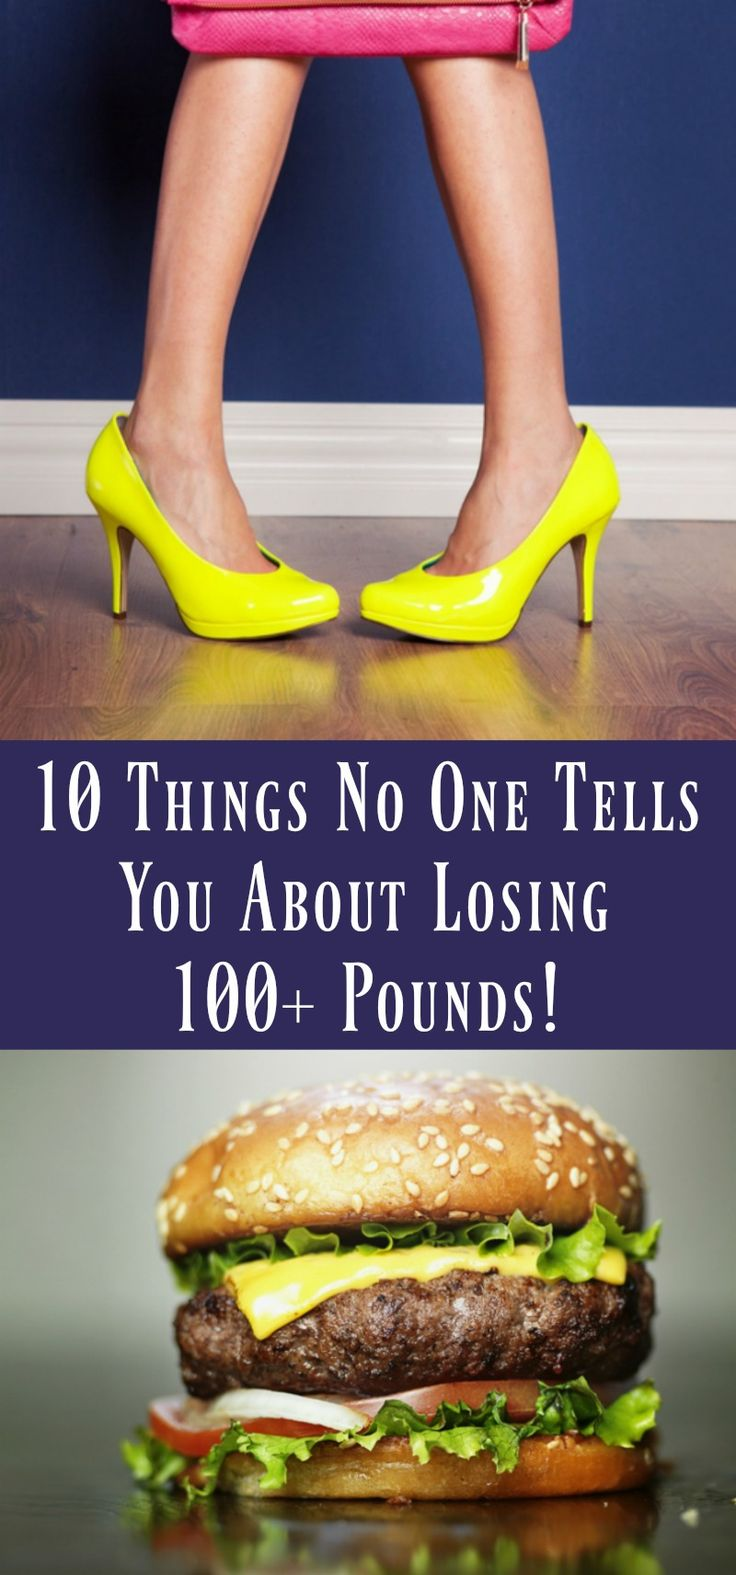 10 Things No One Tells You About Losing 100+ Pounds!